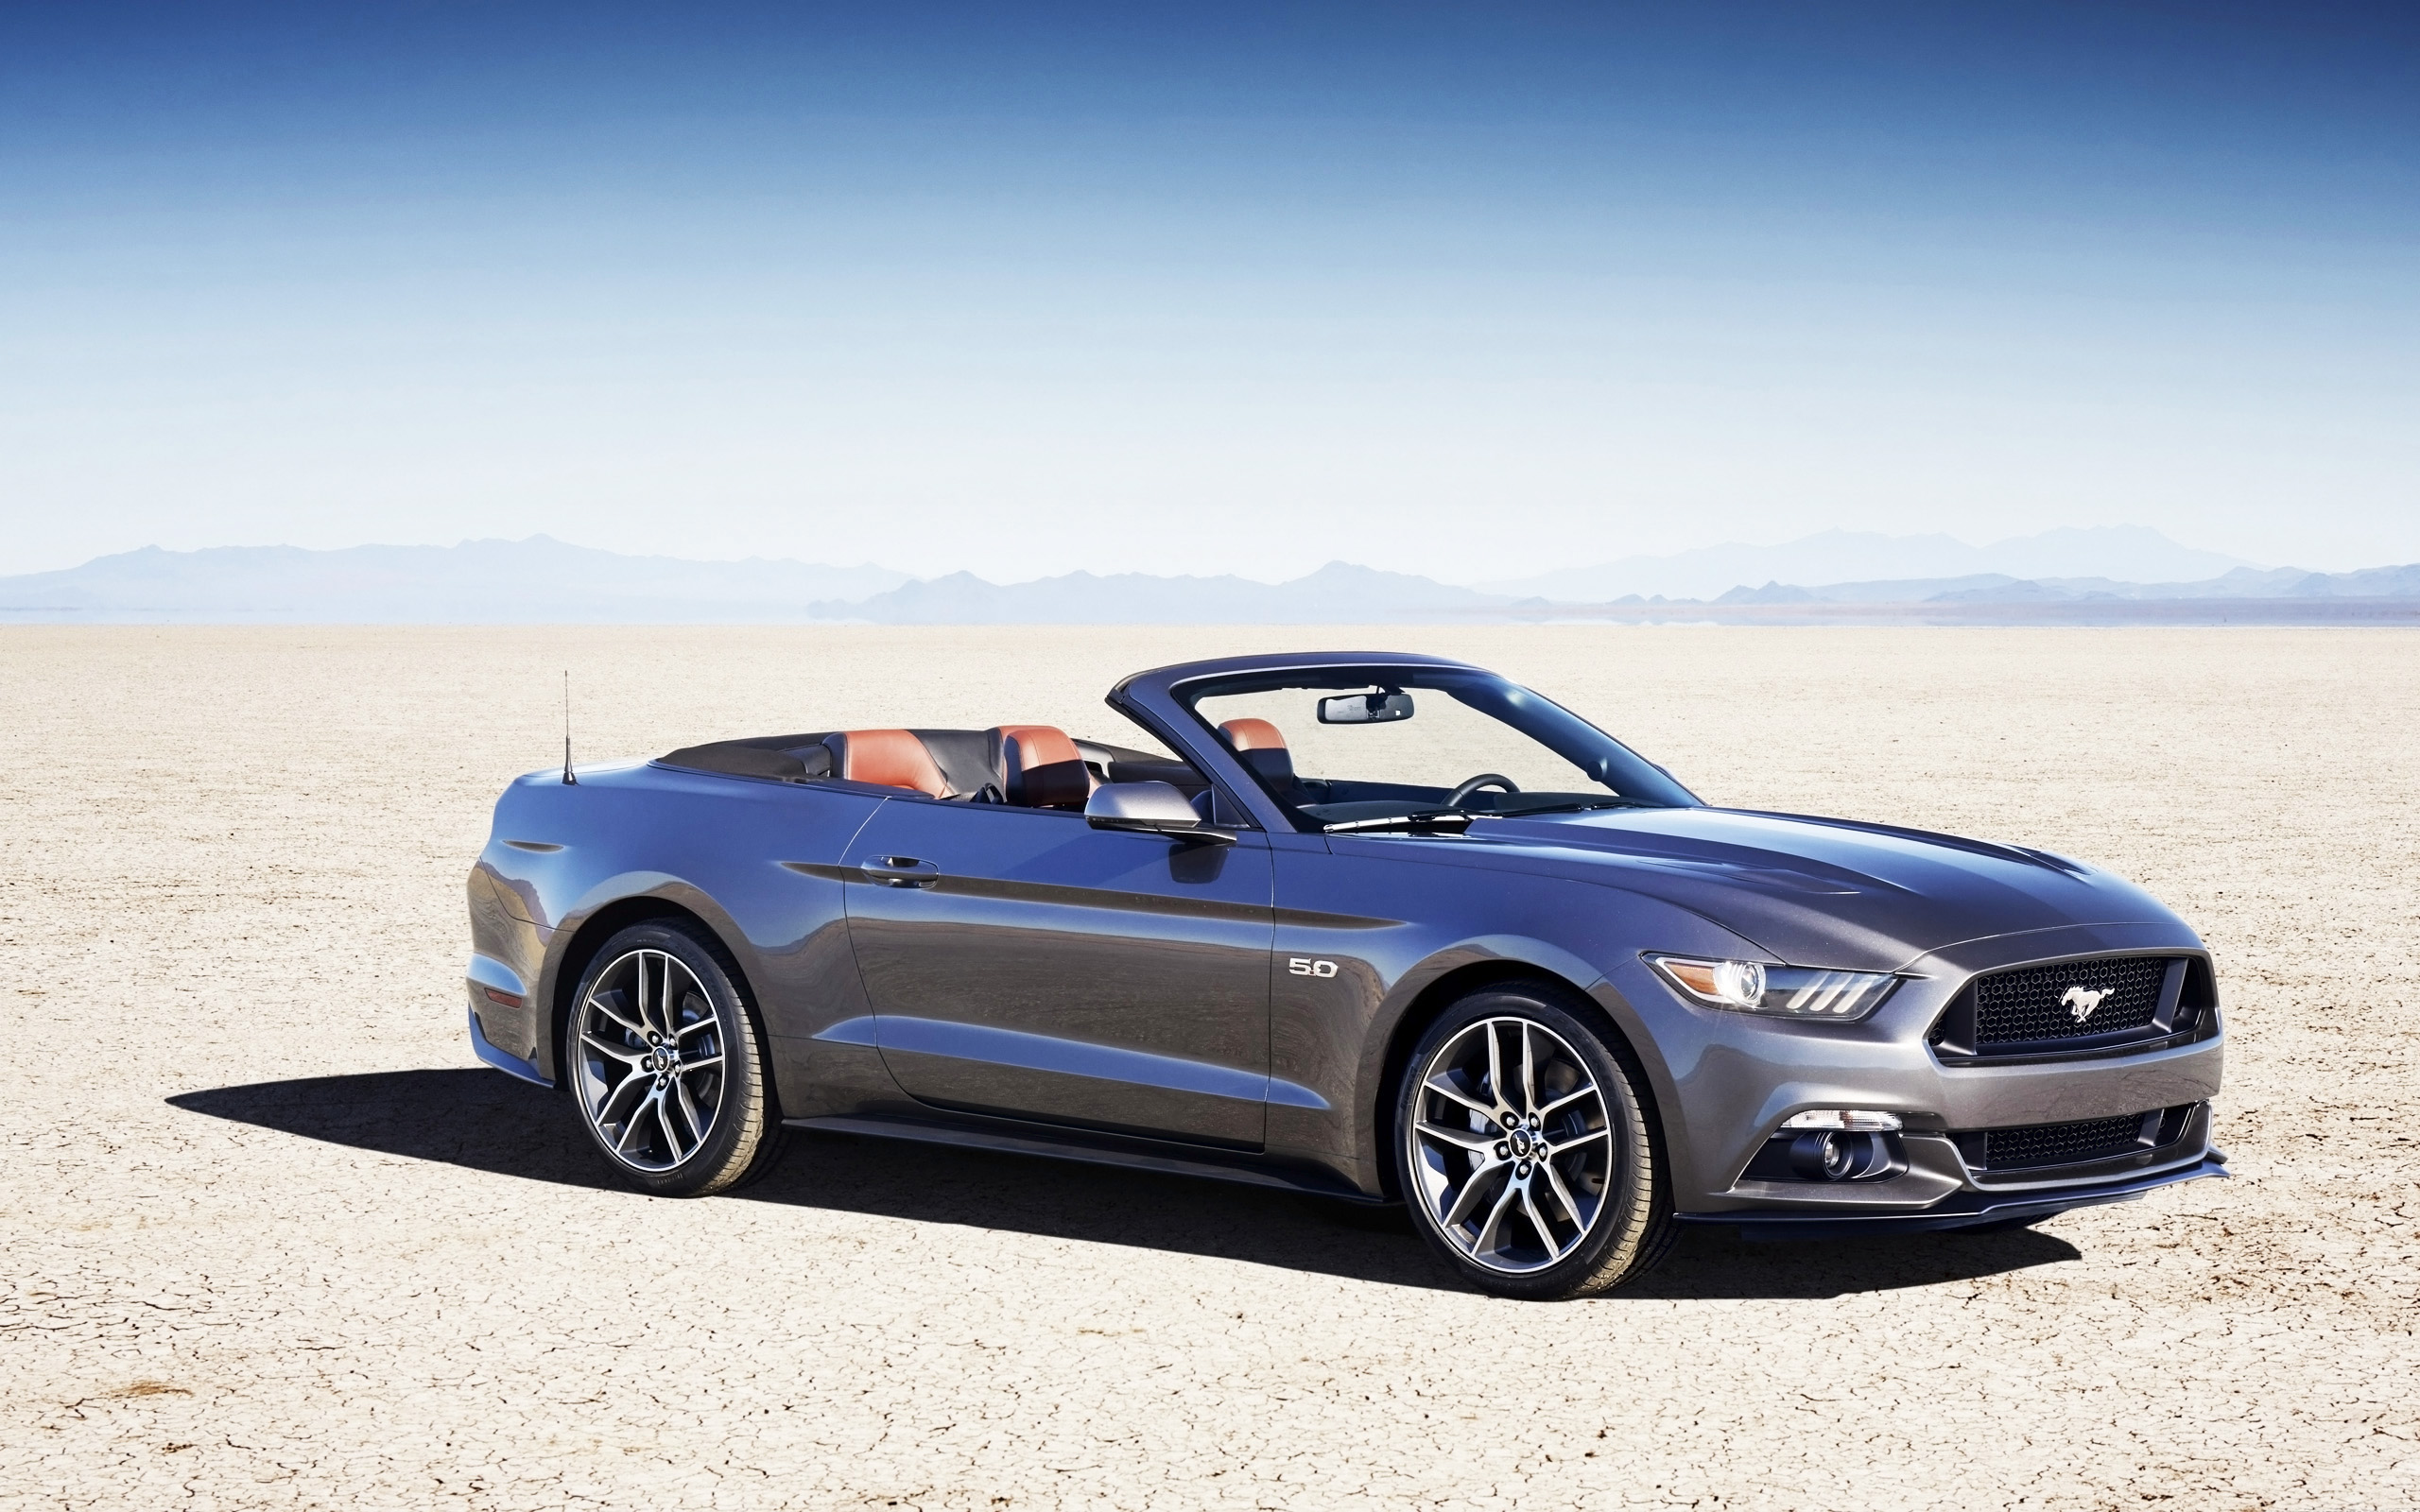 2015 ford mustang convertible wallpaper hd car wallpapers. Black Bedroom Furniture Sets. Home Design Ideas